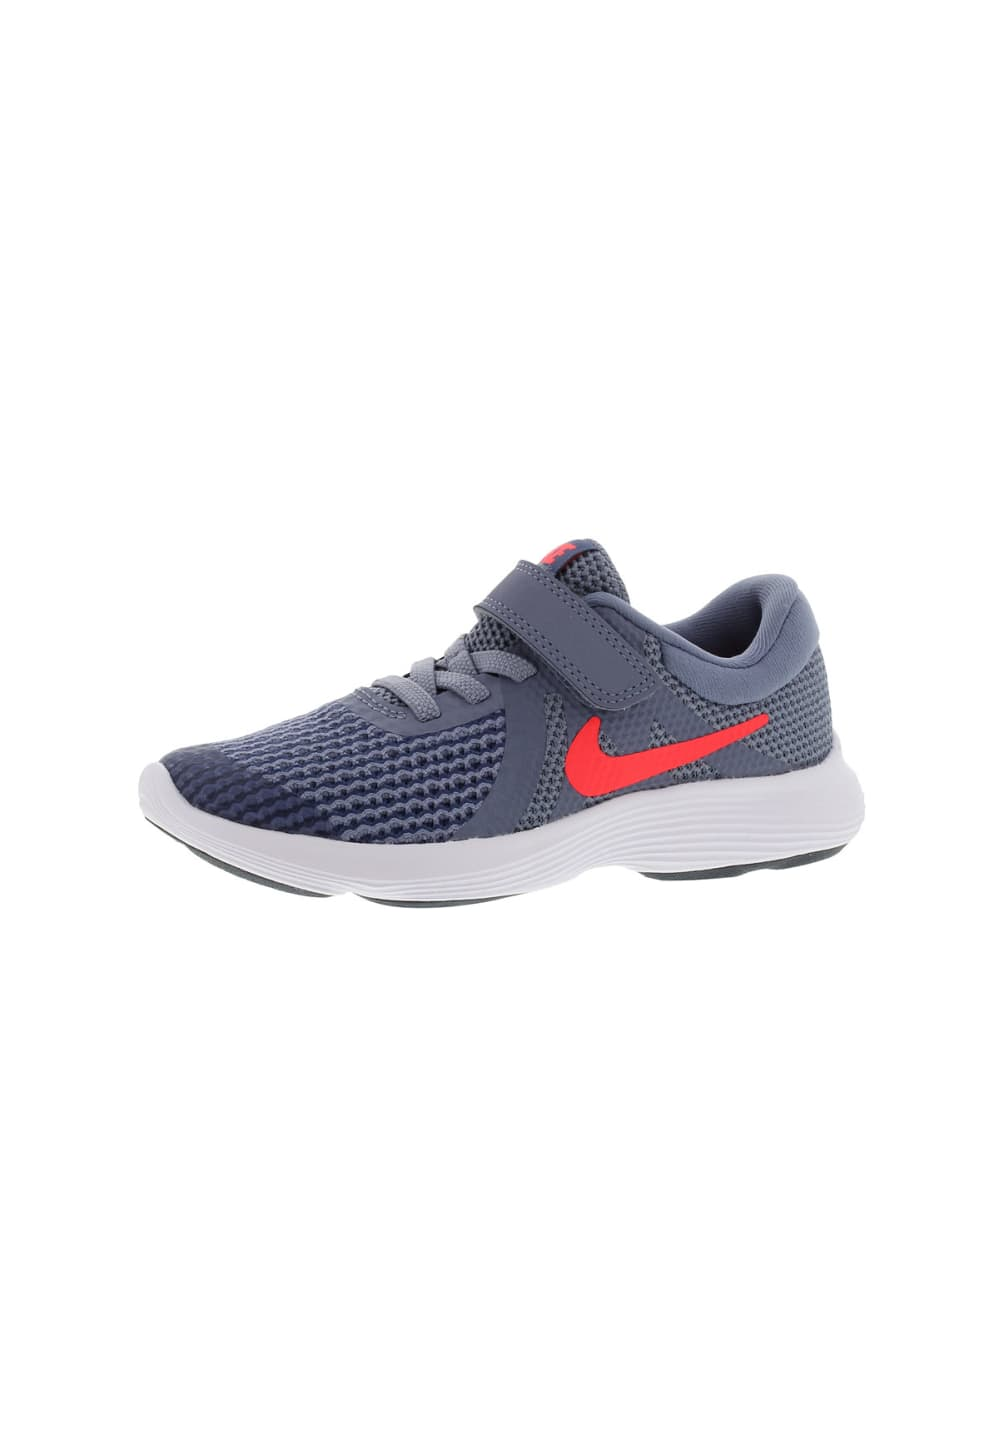 2a7f00ff908 Nike Revolution 4 (psv) - Running shoes for Boys - Grey